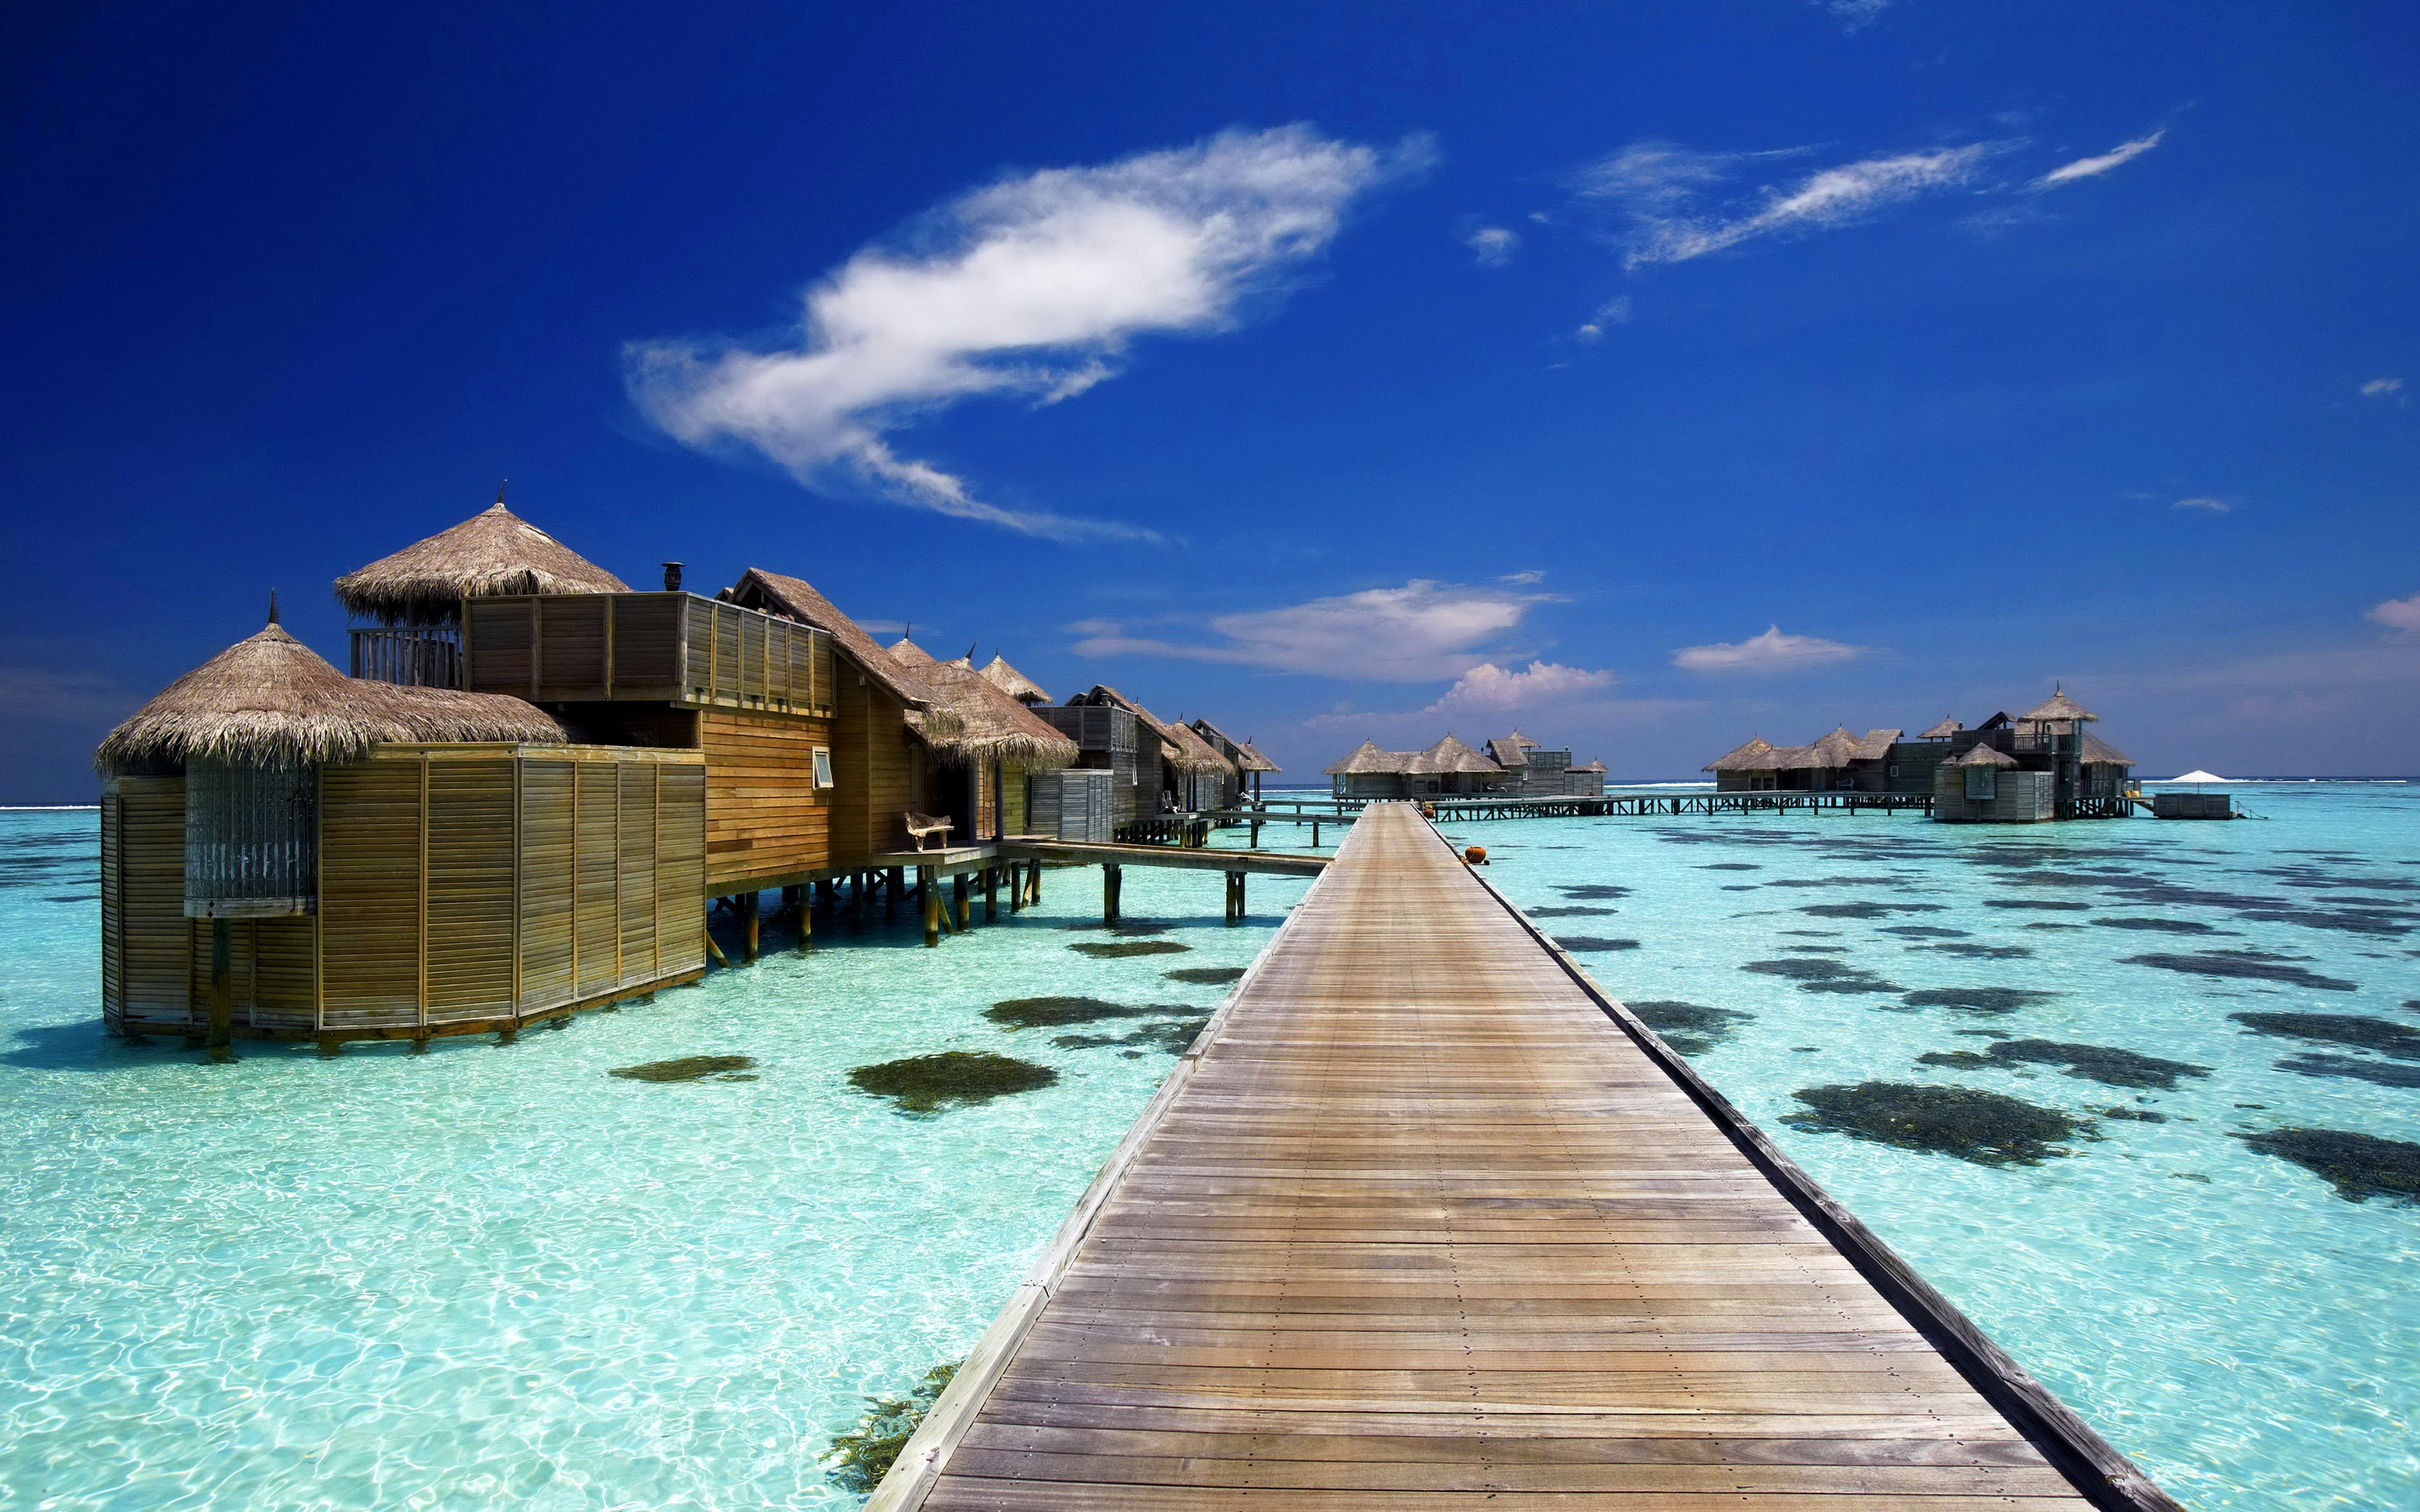 Luxury Resort in Maldives for 2880 x 1800 Retina Display resolution